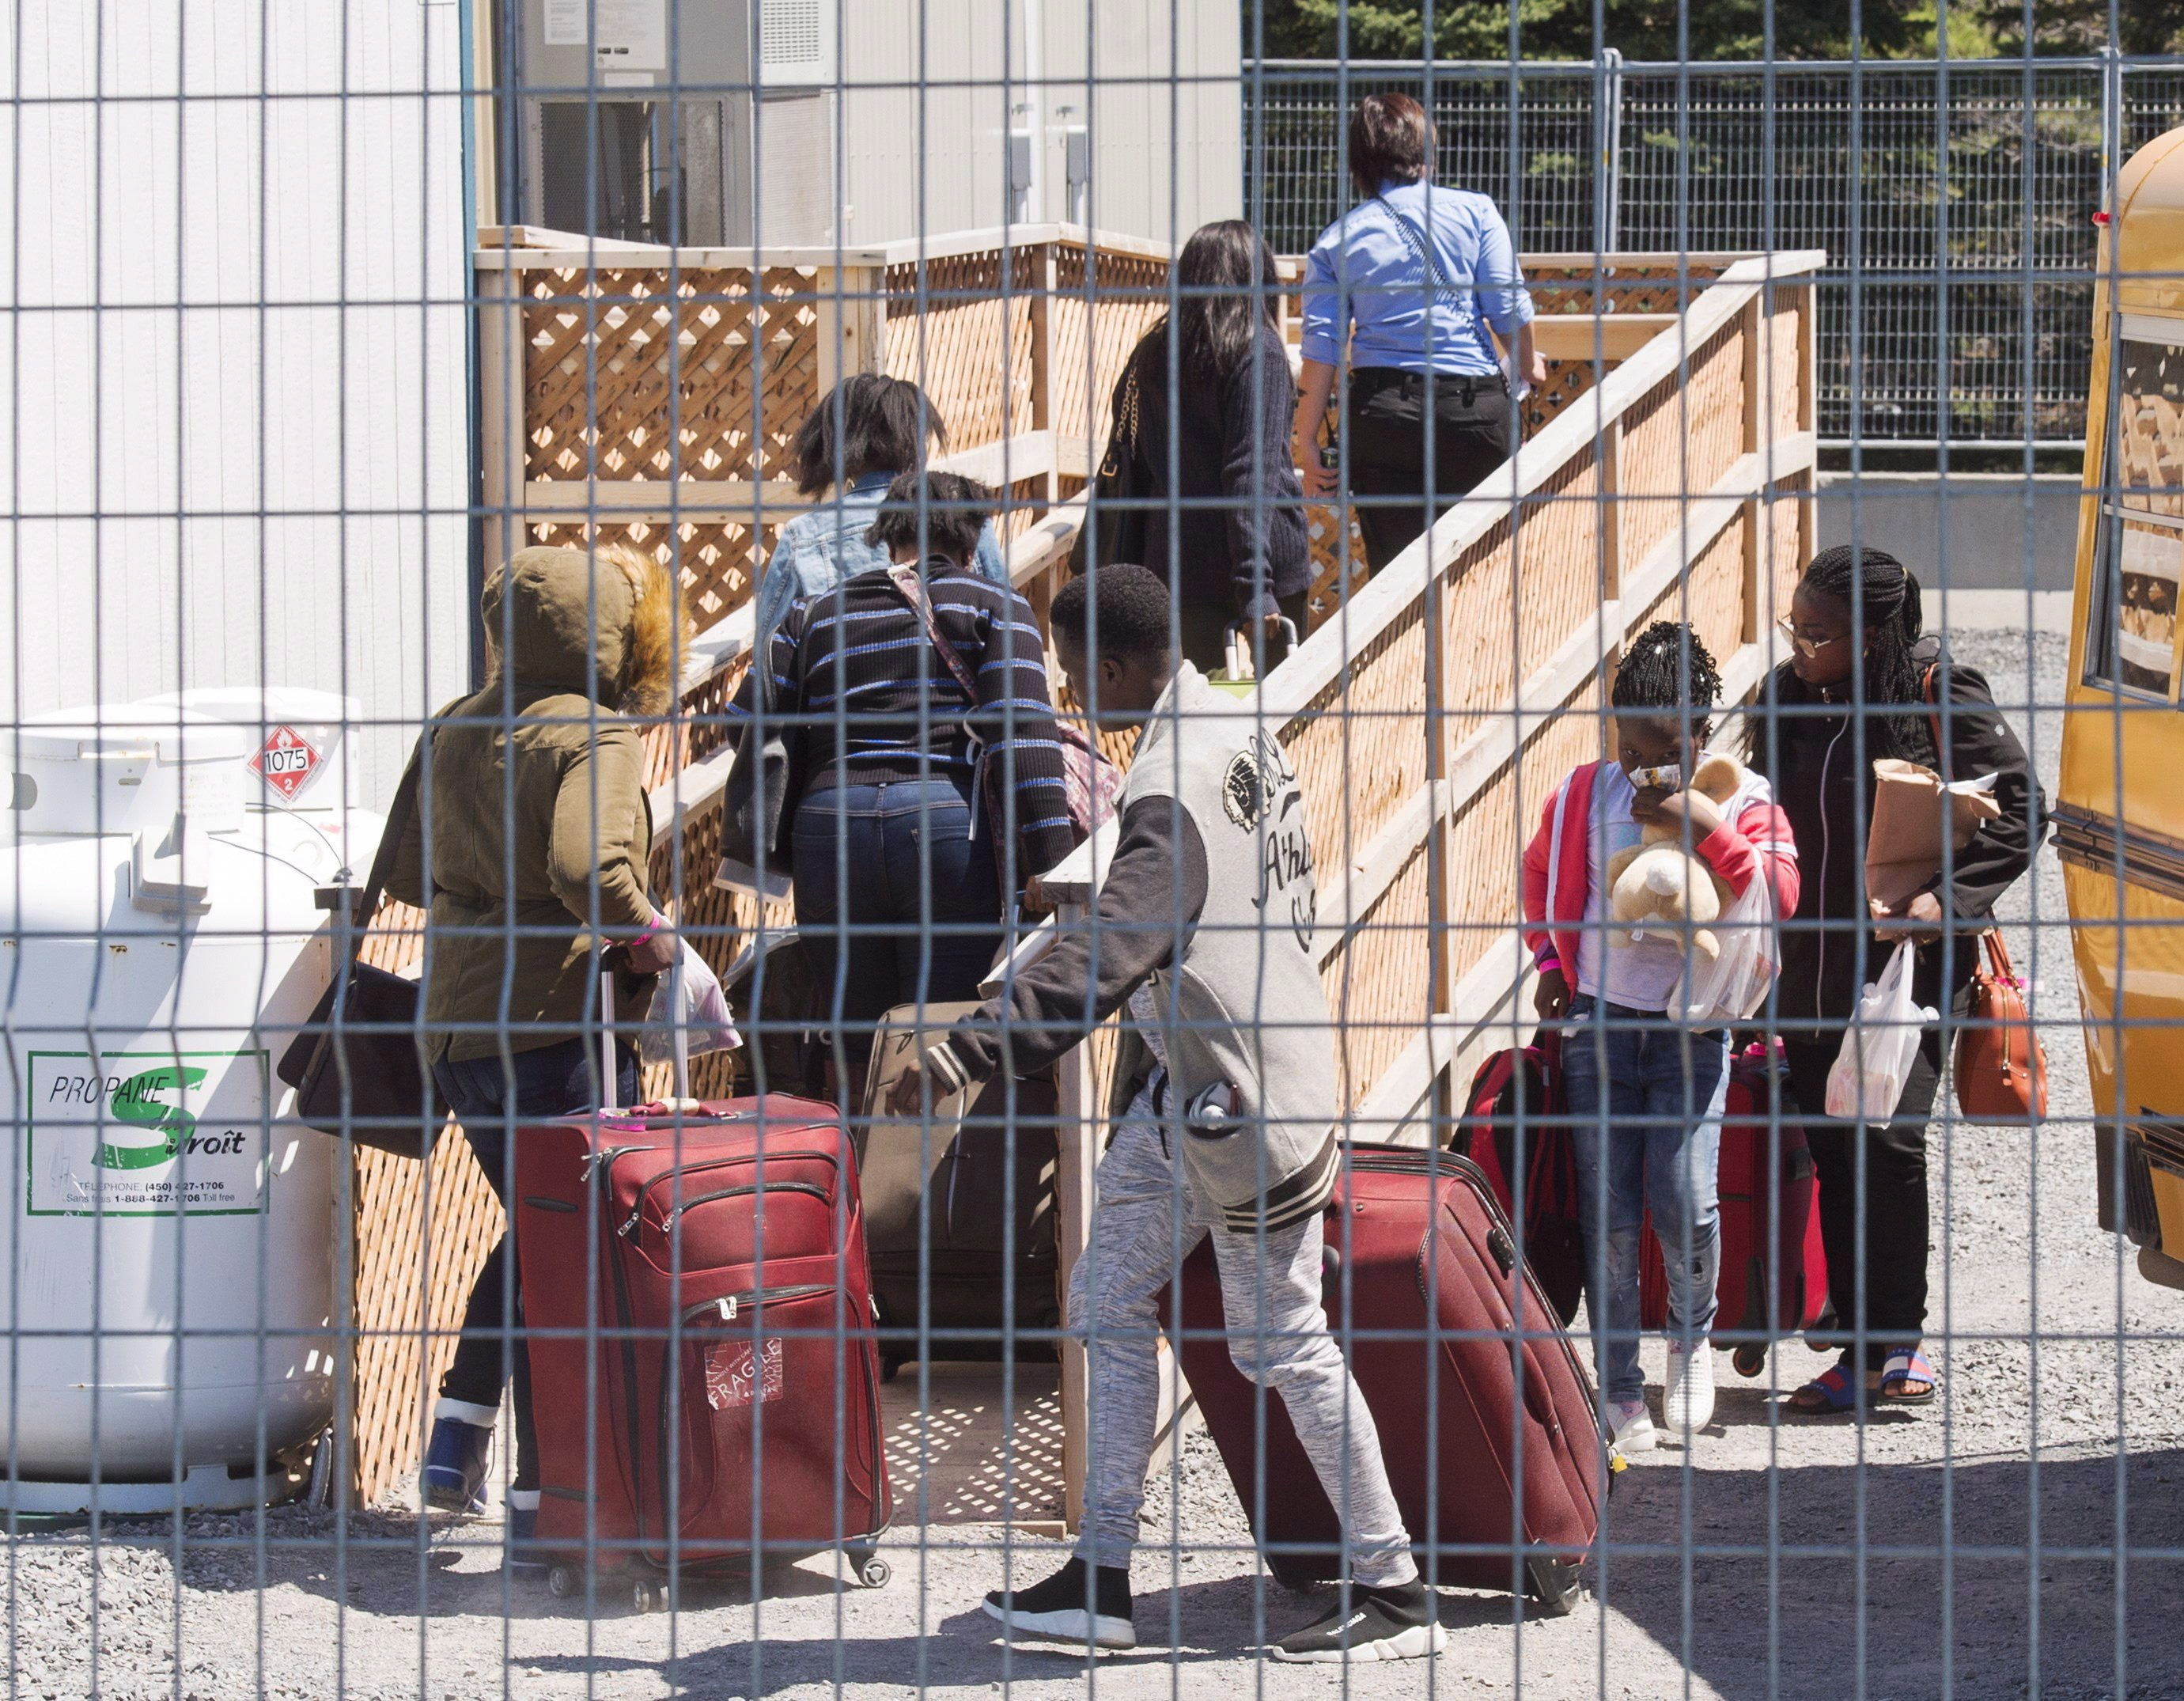 Thousands of migrants have crossed into Canada at Roxham Road, which straddles the Quebec-New York border, in recent months. (Ryan Remiorz/Canadian Press)